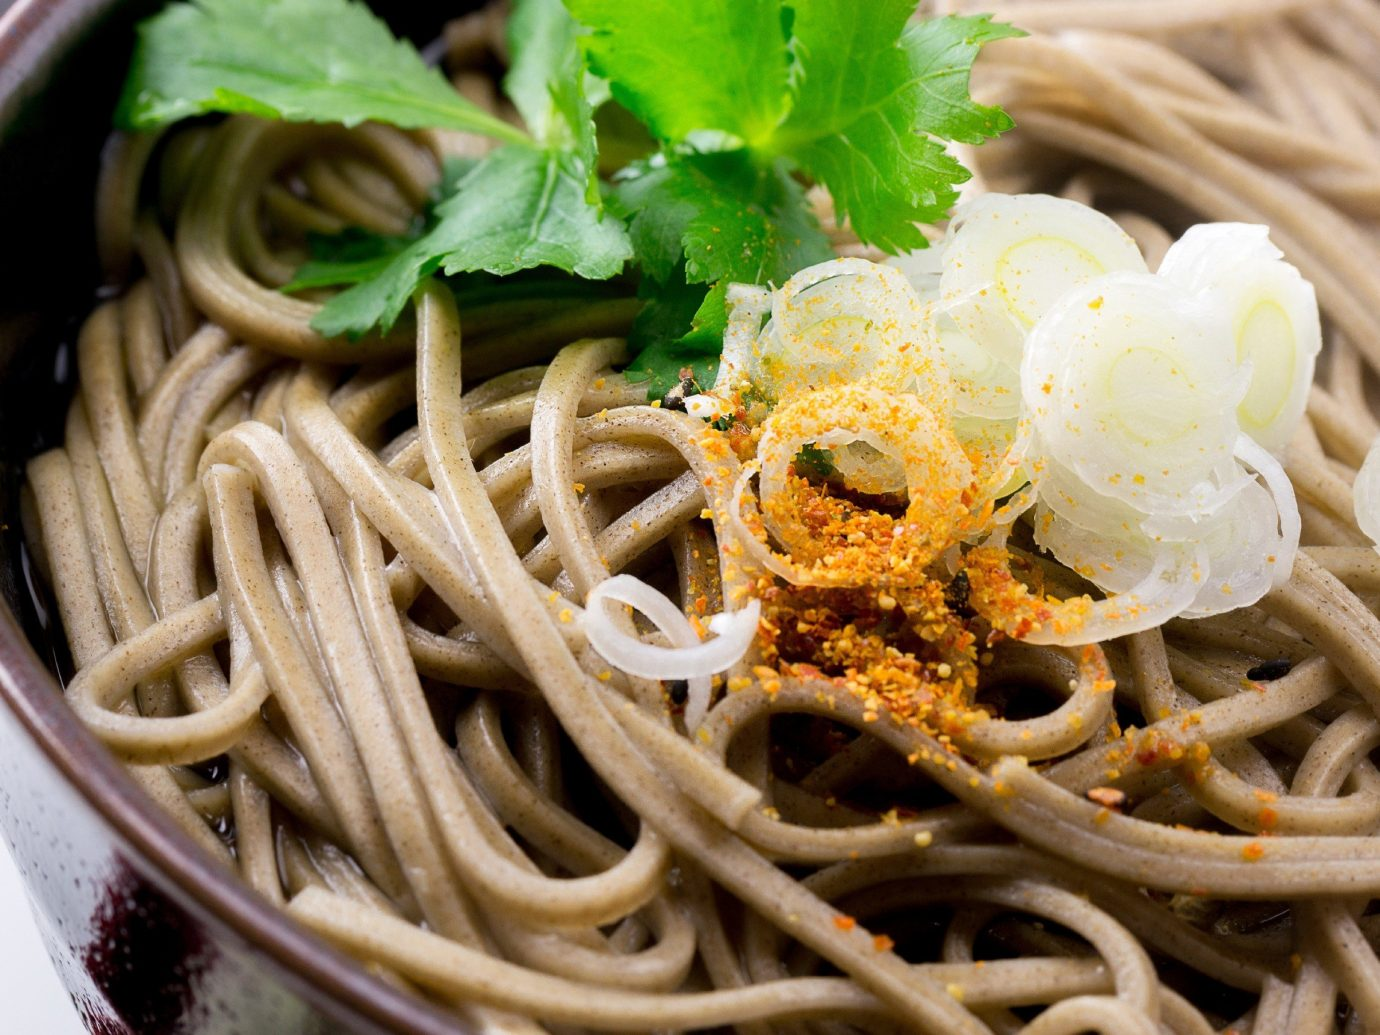 Food + Drink food dish soba cuisine noodle spaghetti asian food chinese noodles chow mein chinese food yakisoba udon japanese cuisine yaki udon pasta fried noodles bucatini produce vegetarian food carbonara spaghetti aglio e olio sauce close